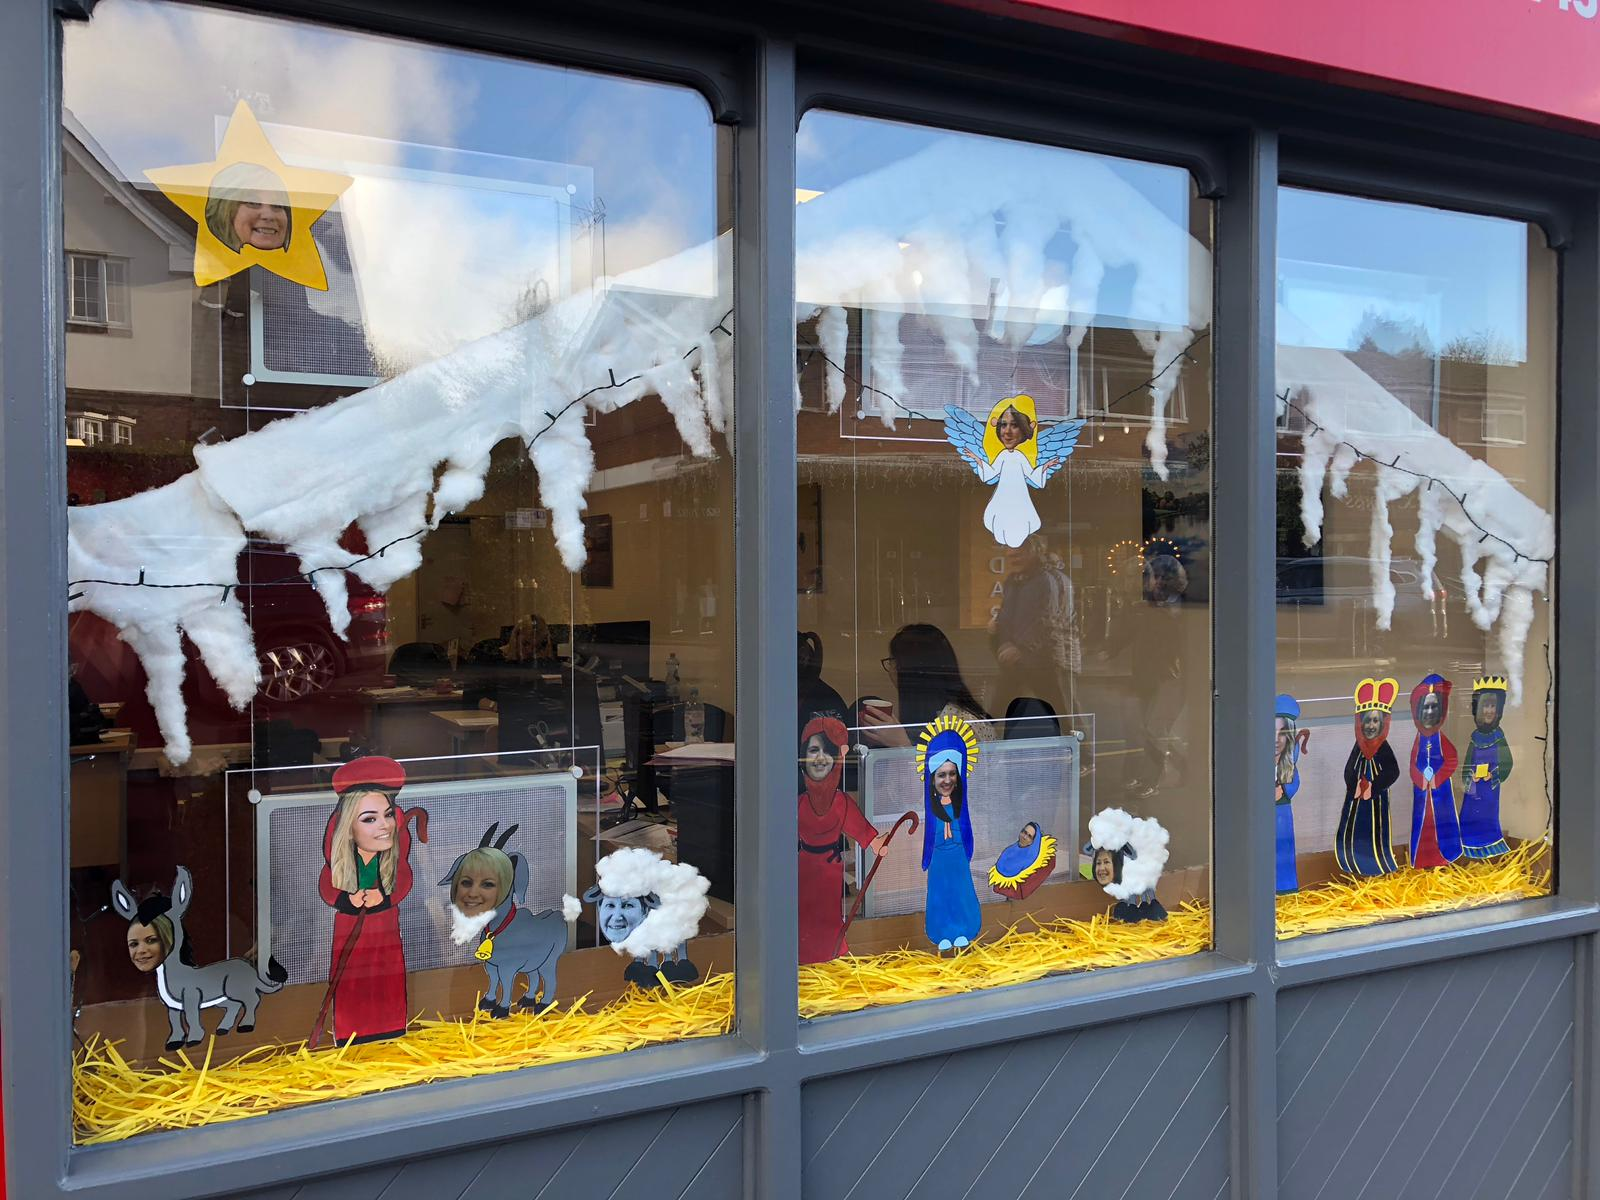 Robert Oulsnam Lettings team Christmas window display